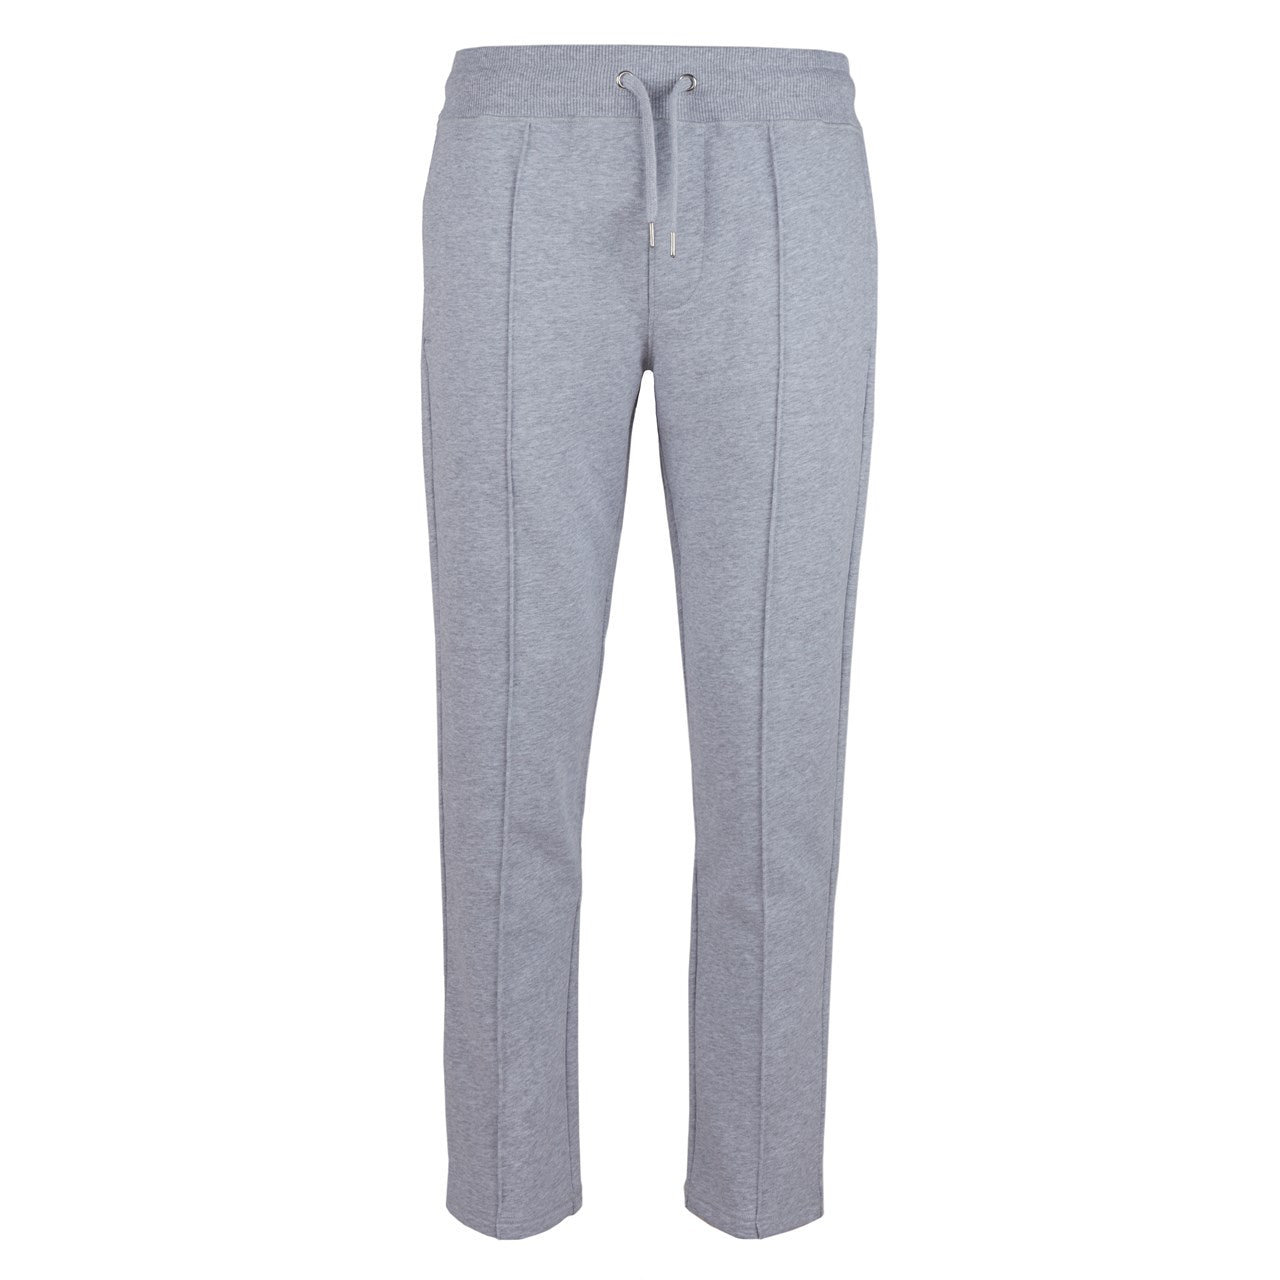 Stenstroms - Grey Cotton Jersey Pants 4400492487300